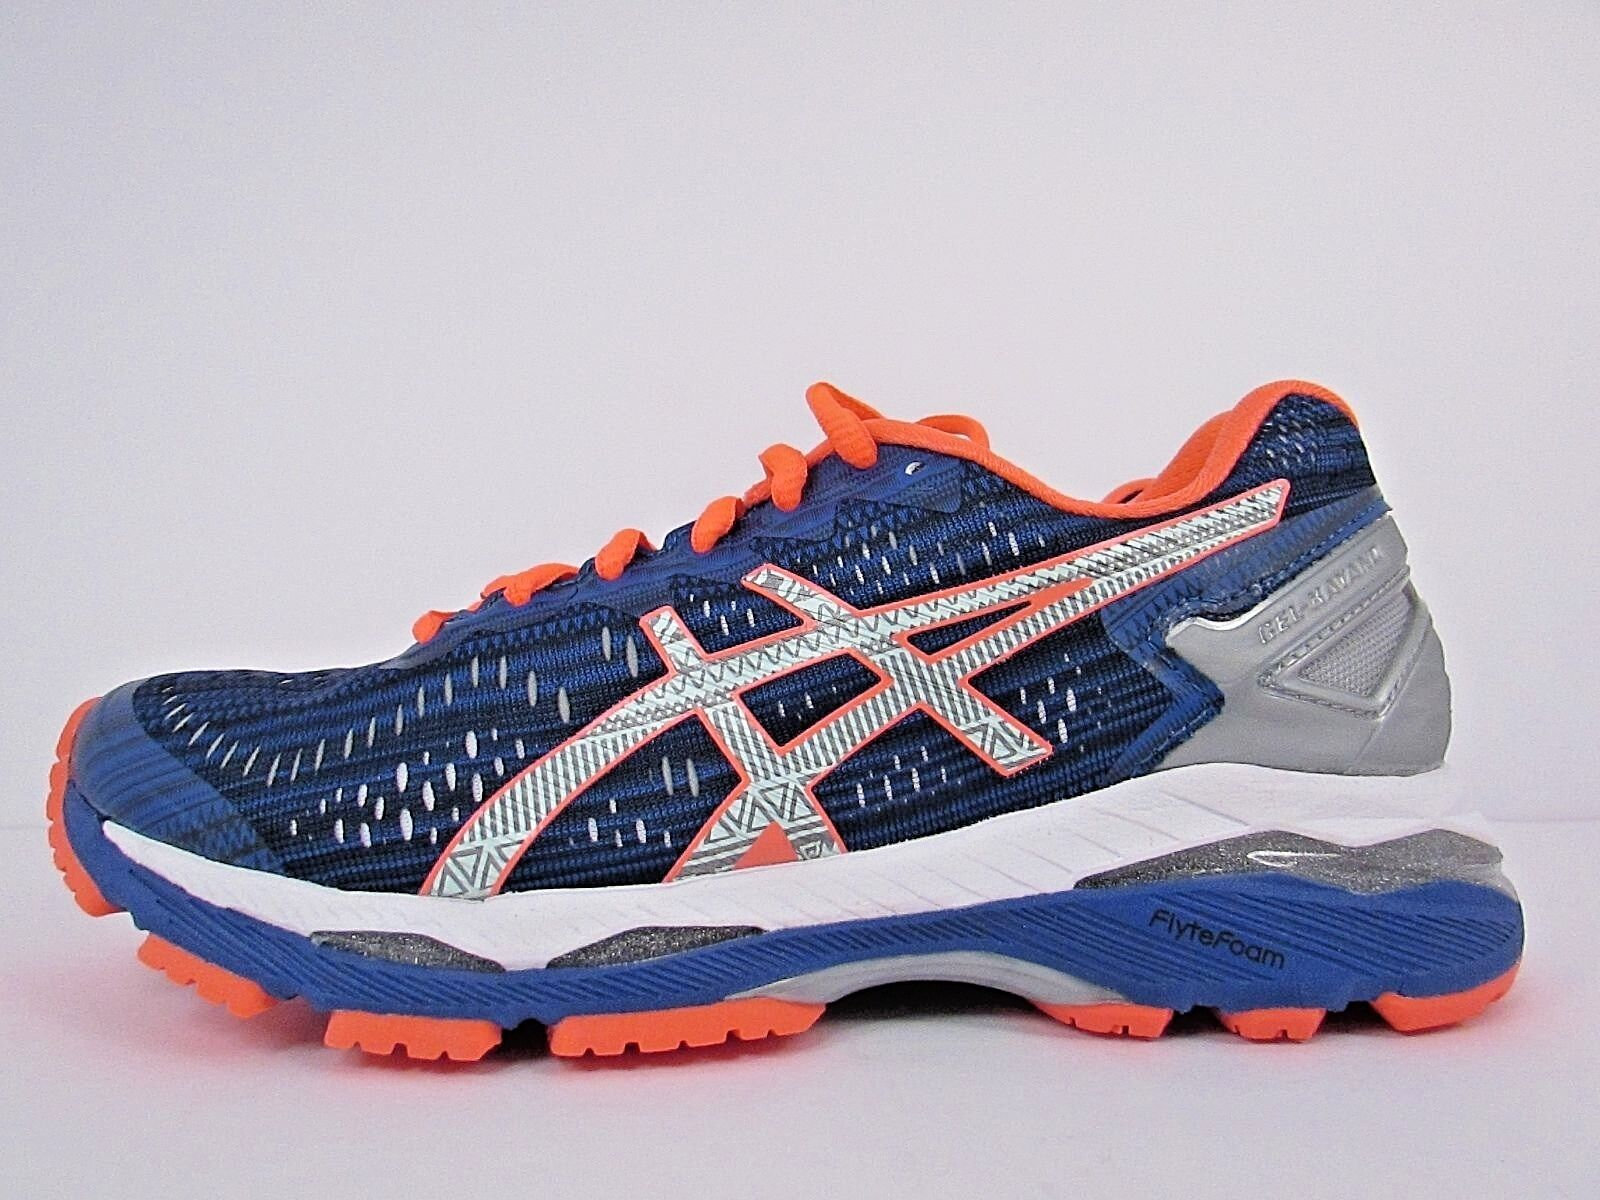 WOMEN'S ASICS KAYANO 23 LITE-SHOW SIZE 6  !!BRAND NEW !! WITHOUT BOX! RUNNING ! Seasonal clearance sale